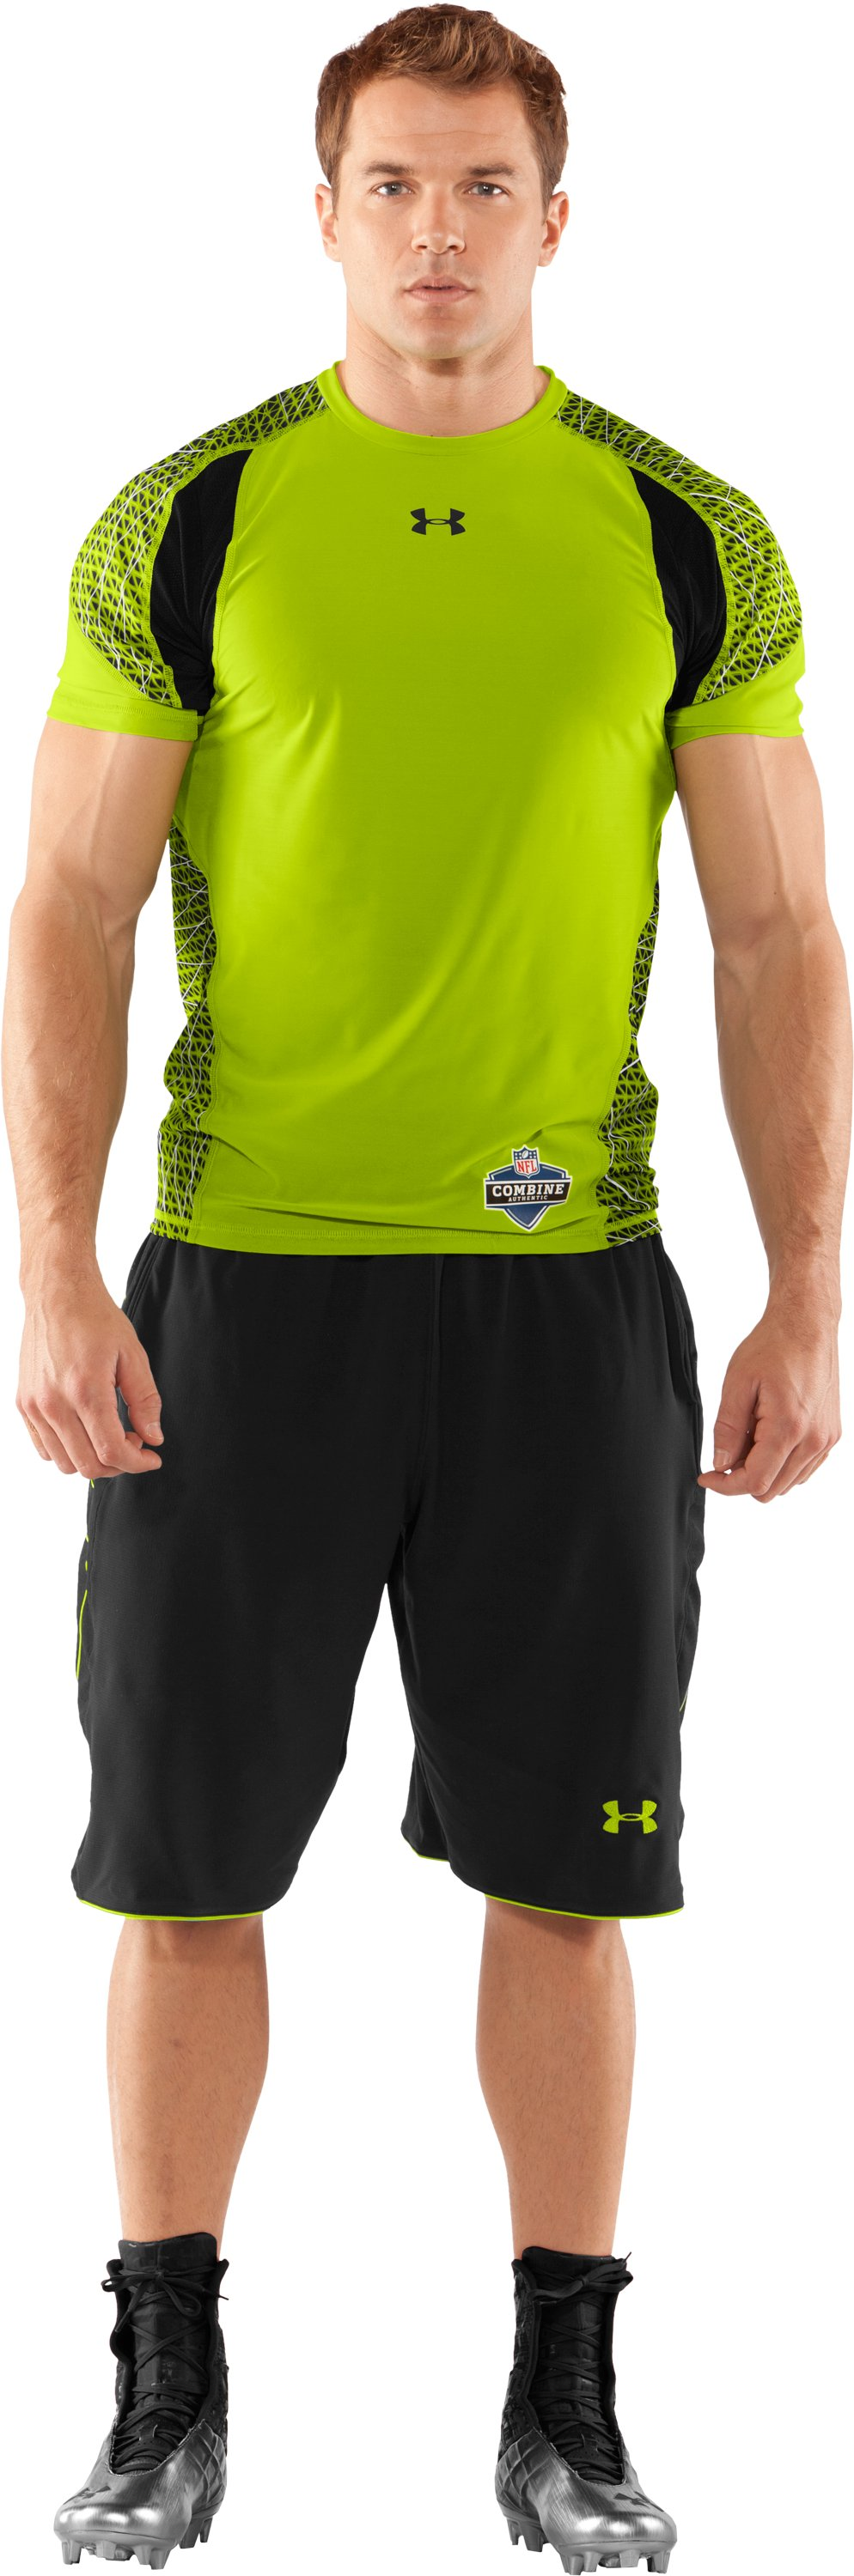 Men's NFL Combine Authentic Warp Speed Fitted Short Sleeve, Velocity, Front